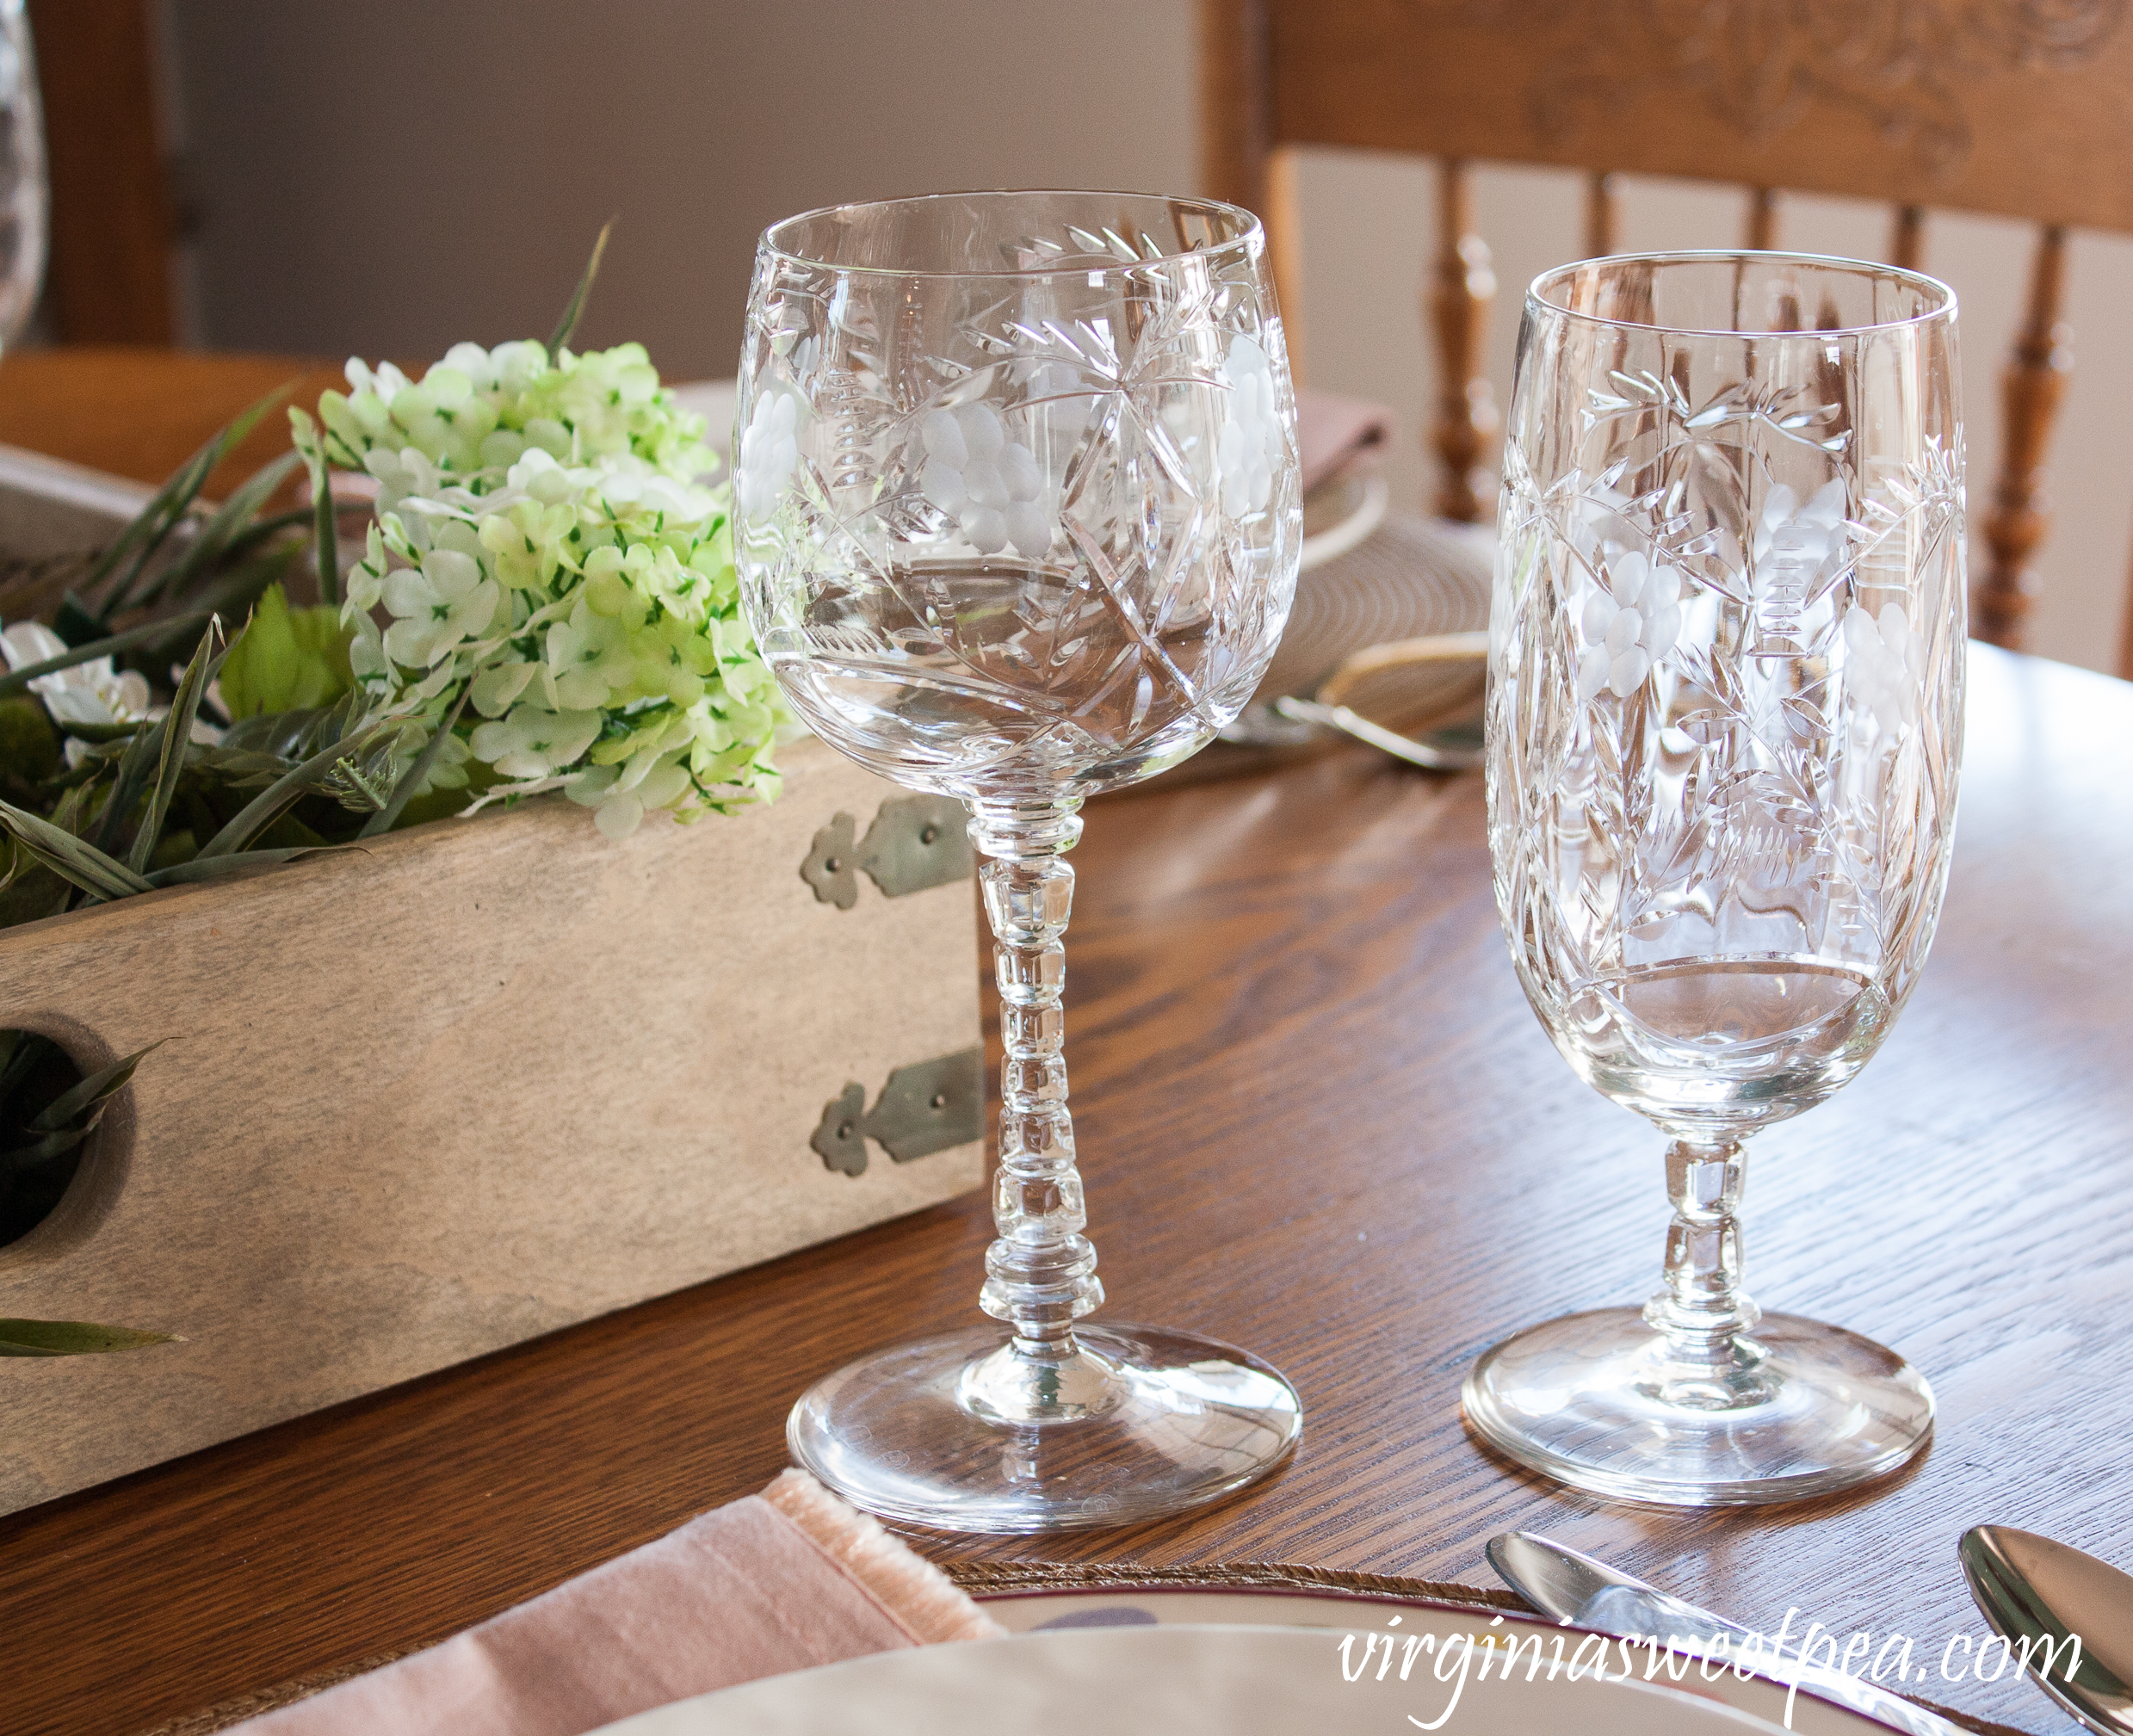 Antique Crystal used on an Easter Tablescape